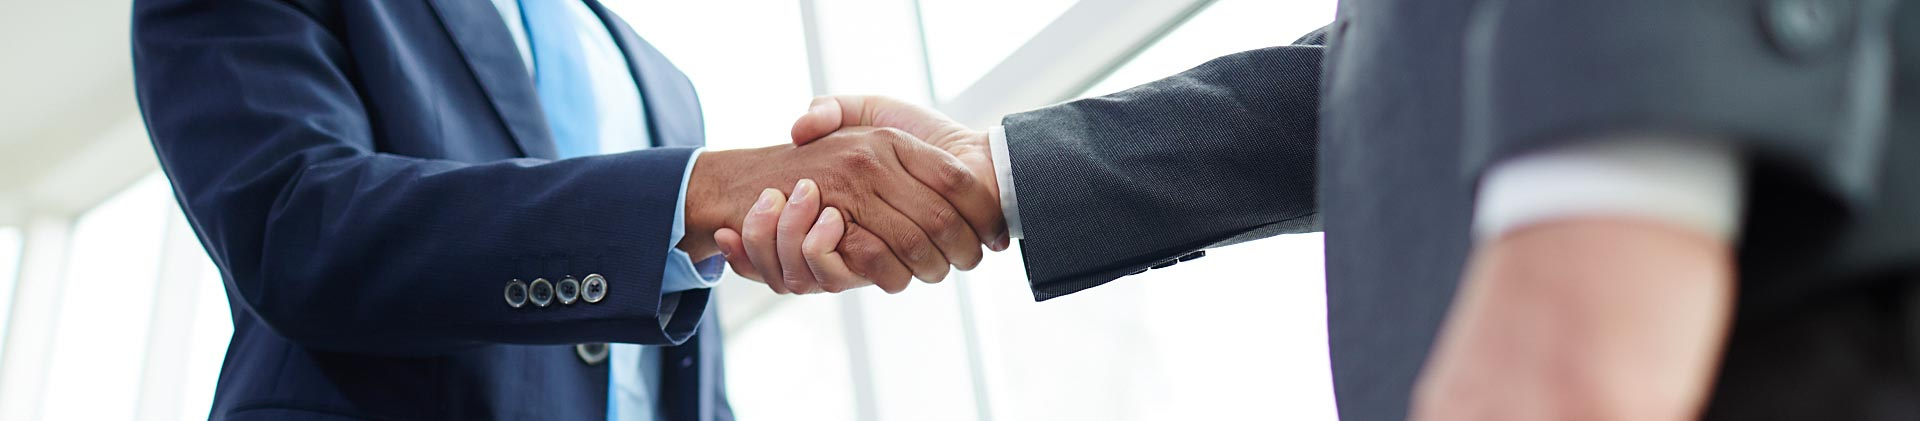 Business professionals shaking hands on deal